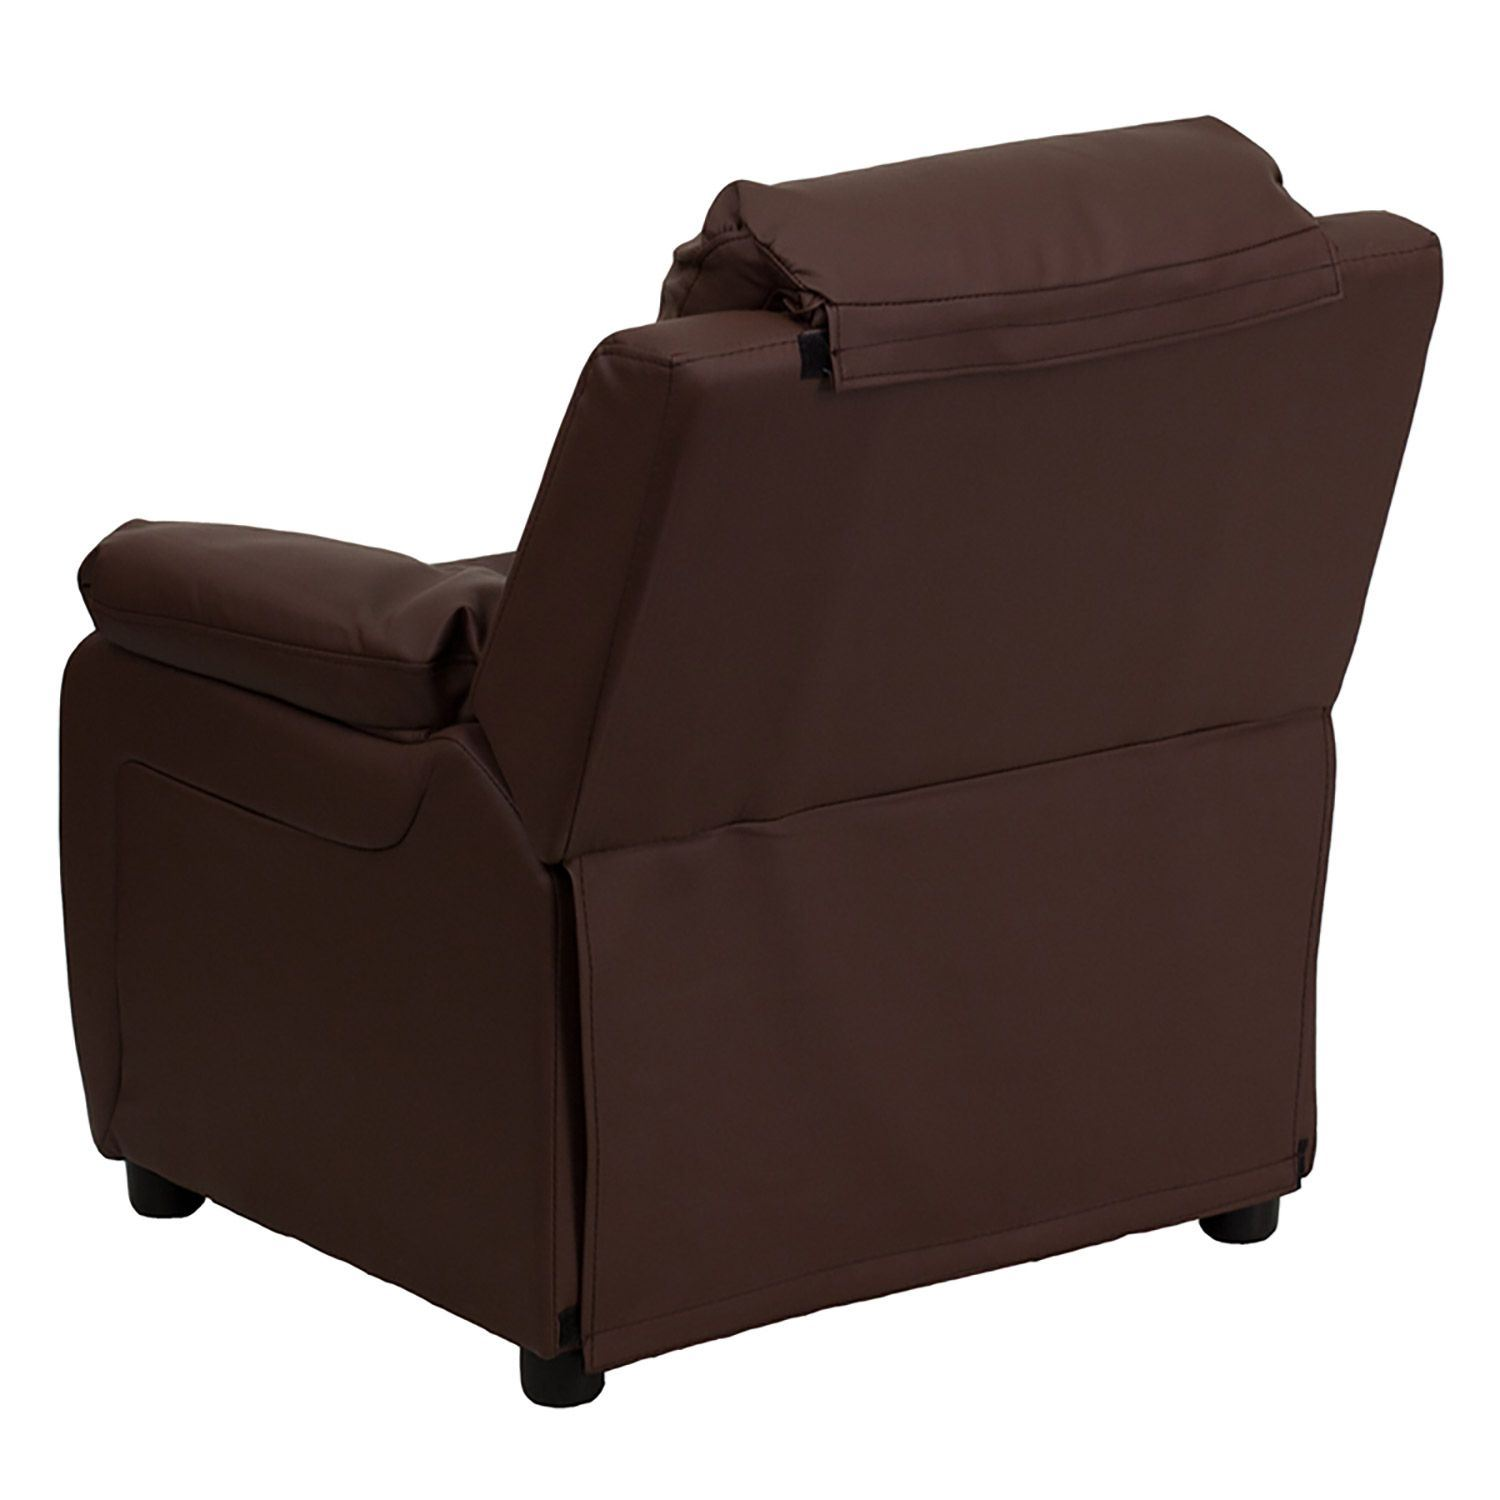 Personalized deluxe brown leather kids recliner d bt for Kids recliner chair